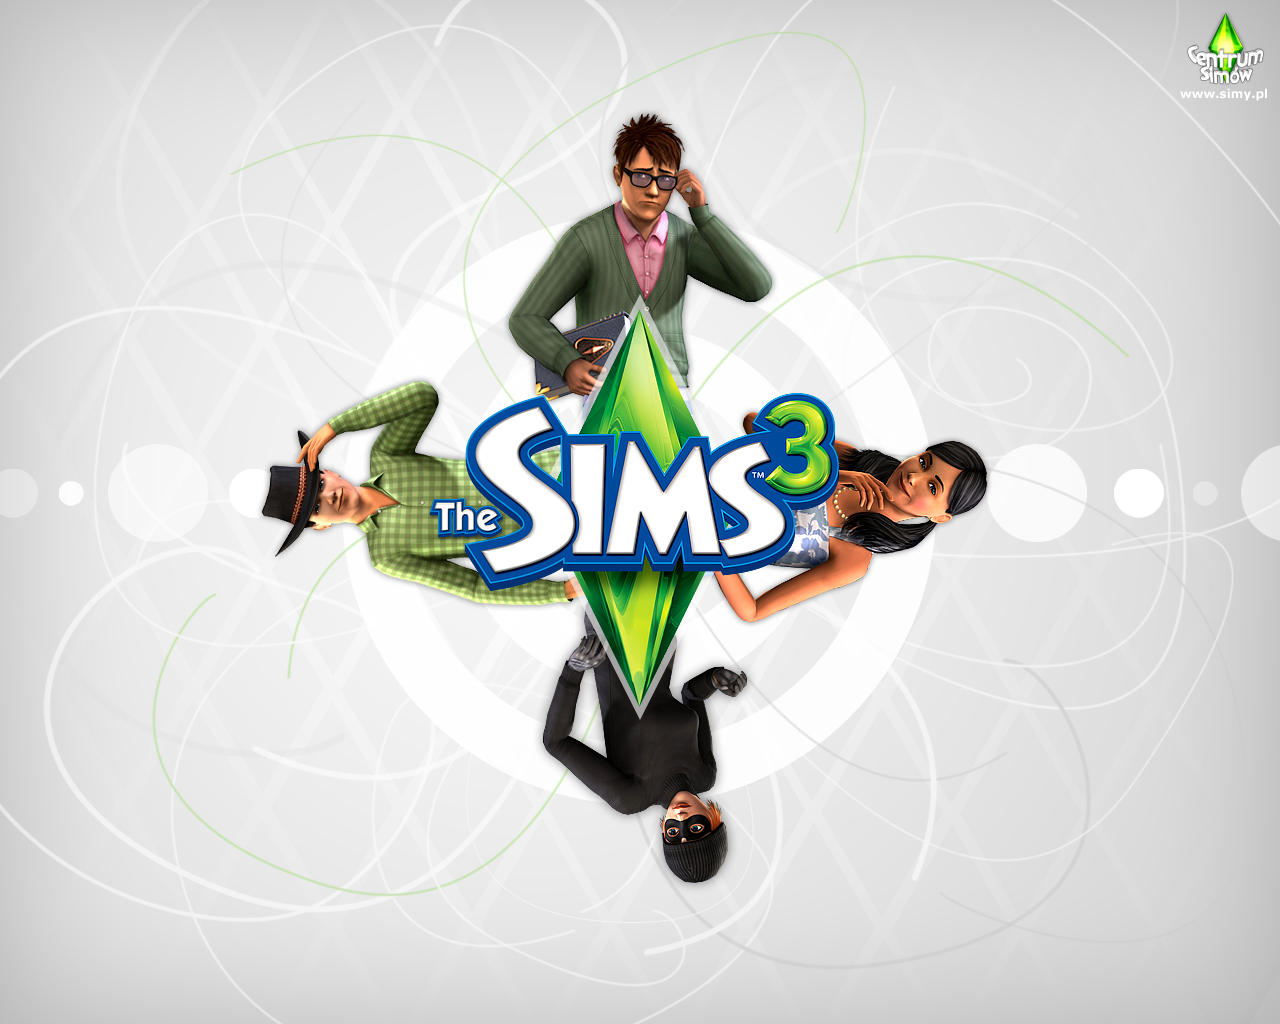 Deanne Morrison the sims 3 background 1280x1024